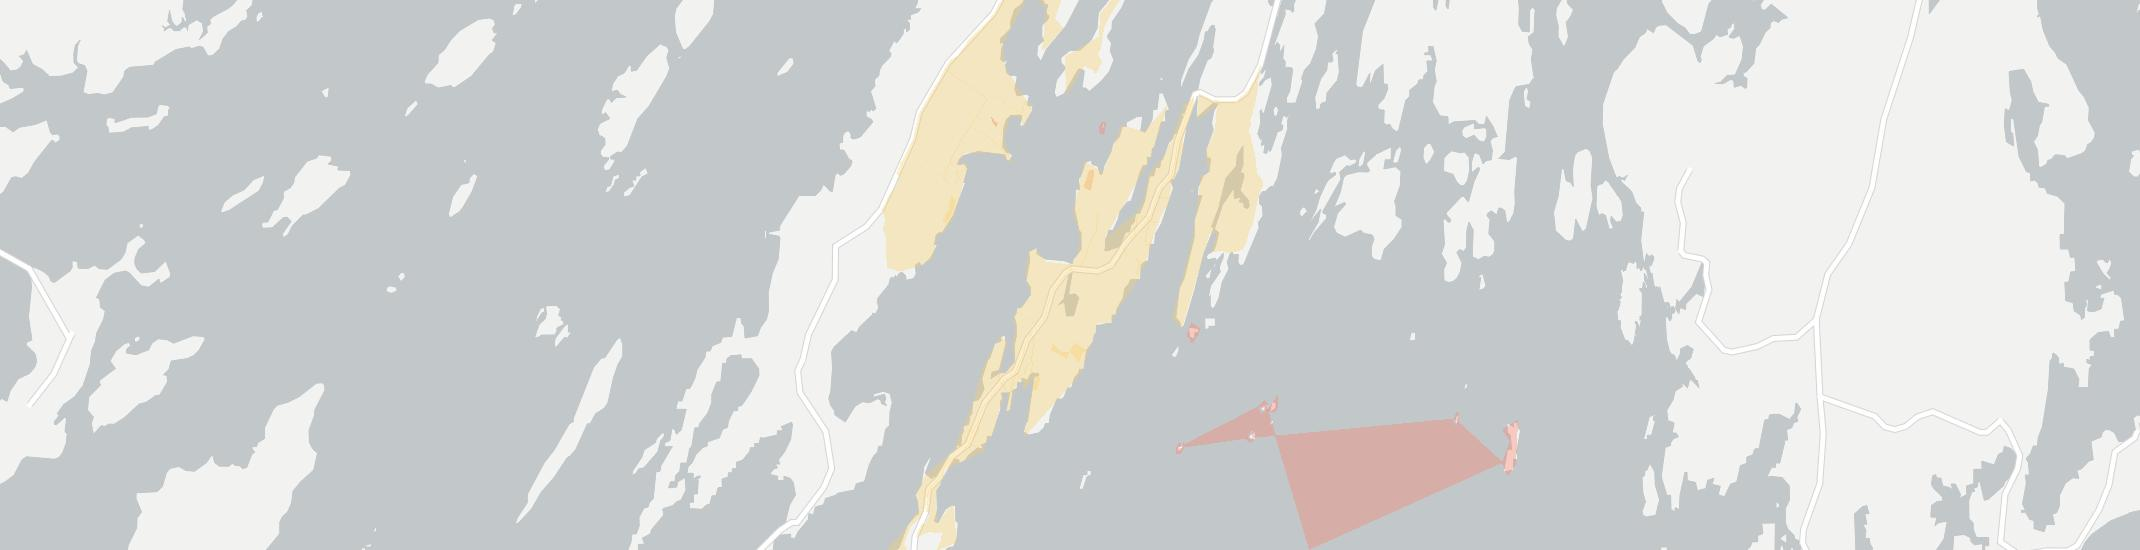 Orrs Island Internet Competition Map. Click for interactive map.